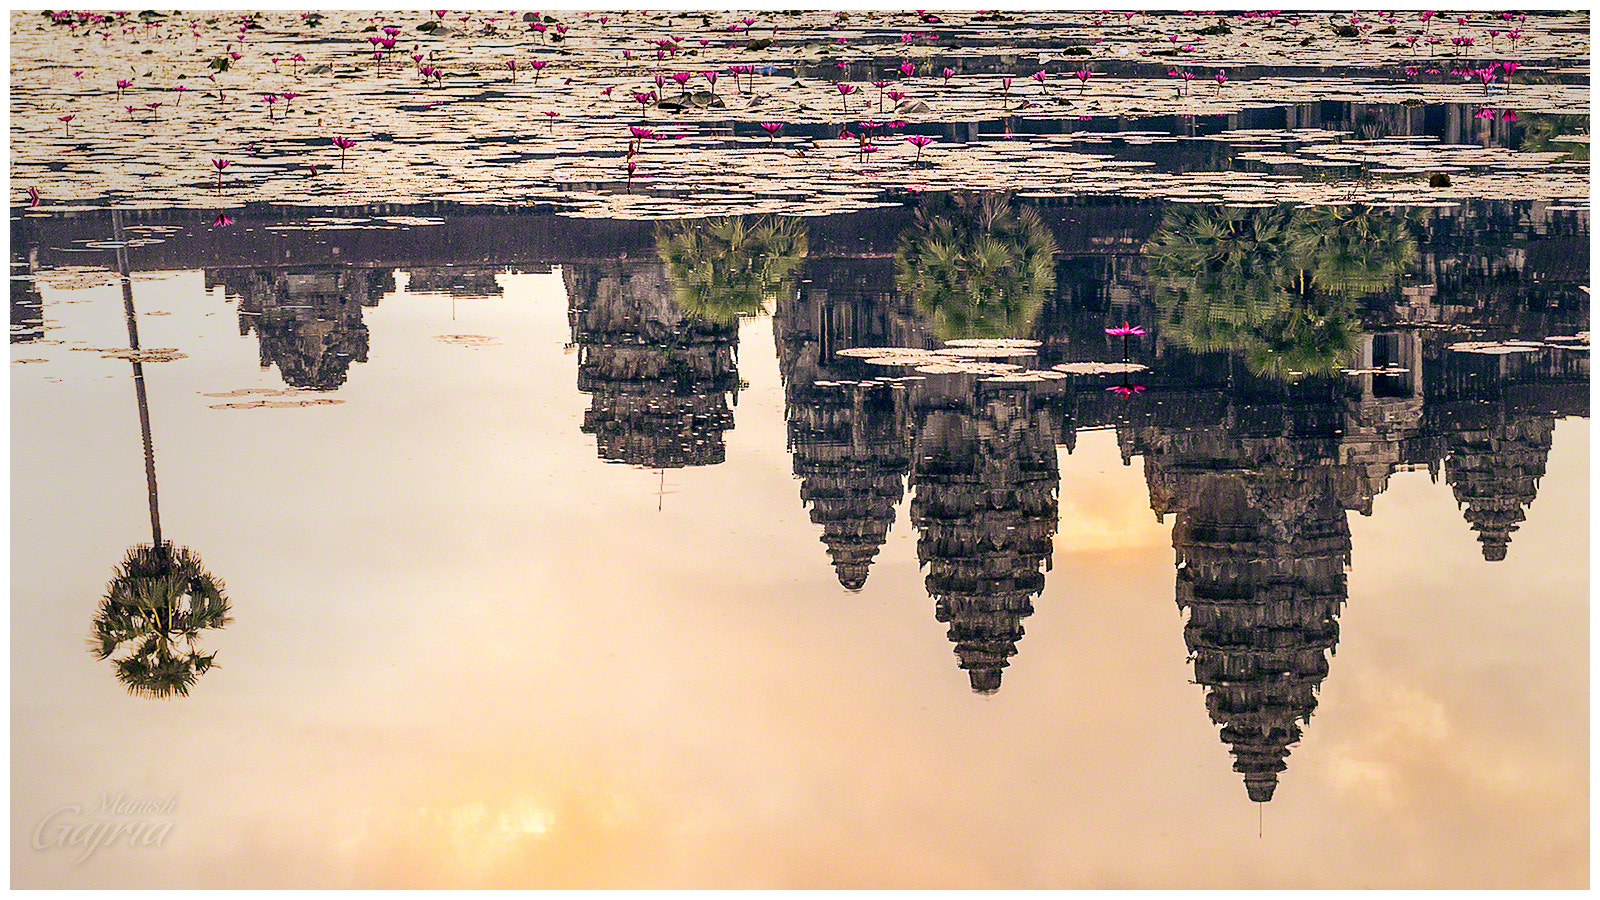 Photograph Reflection of an Era by Manish Gajria on 500px